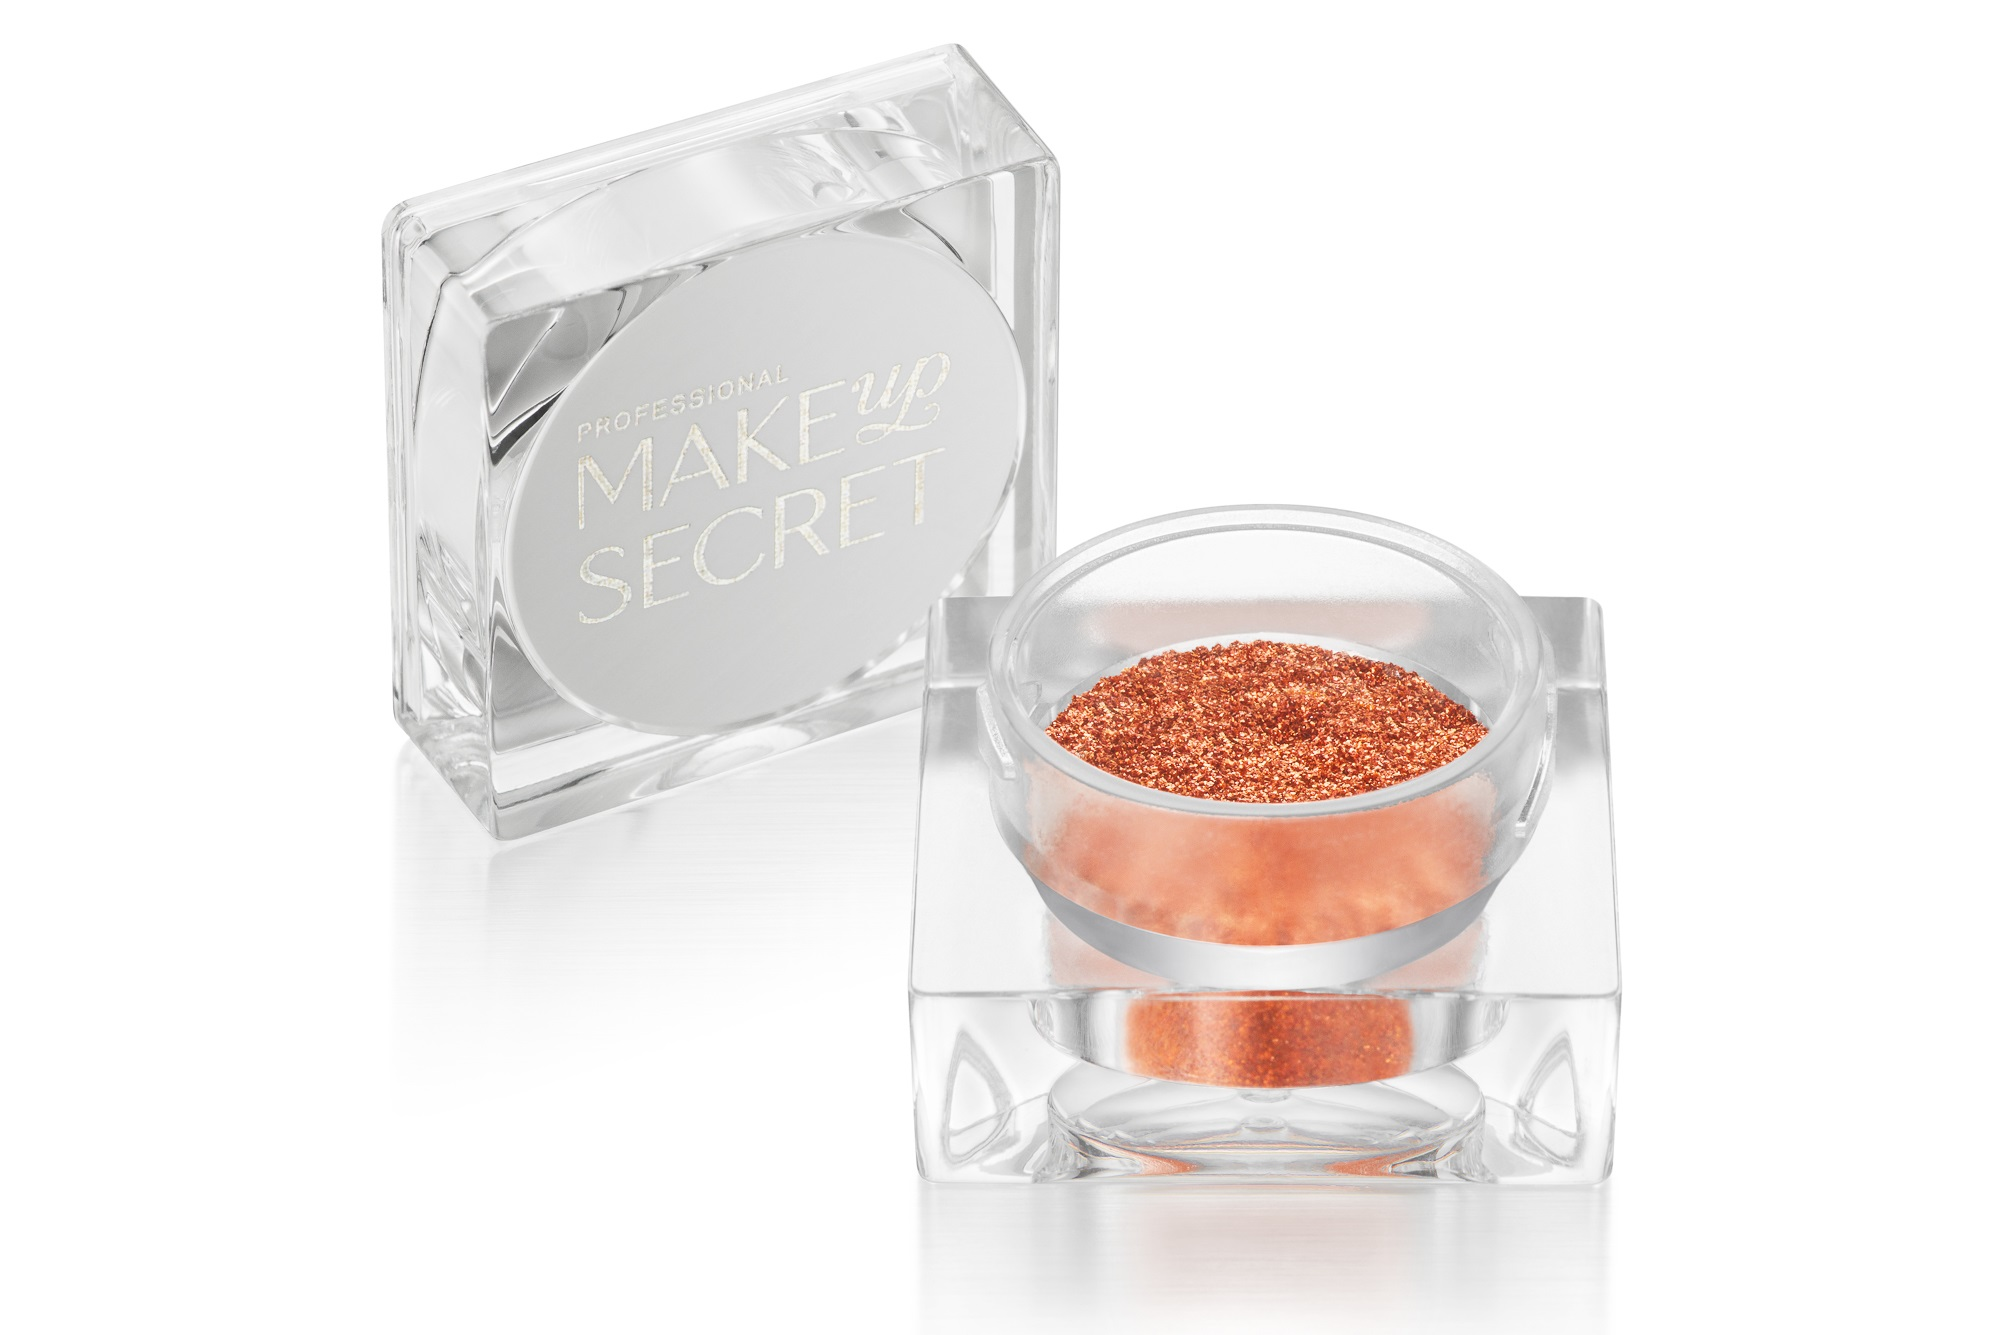 Пигменты Make up Secret MAKEUP EMOTIONS серия Star collection Copper star: фото